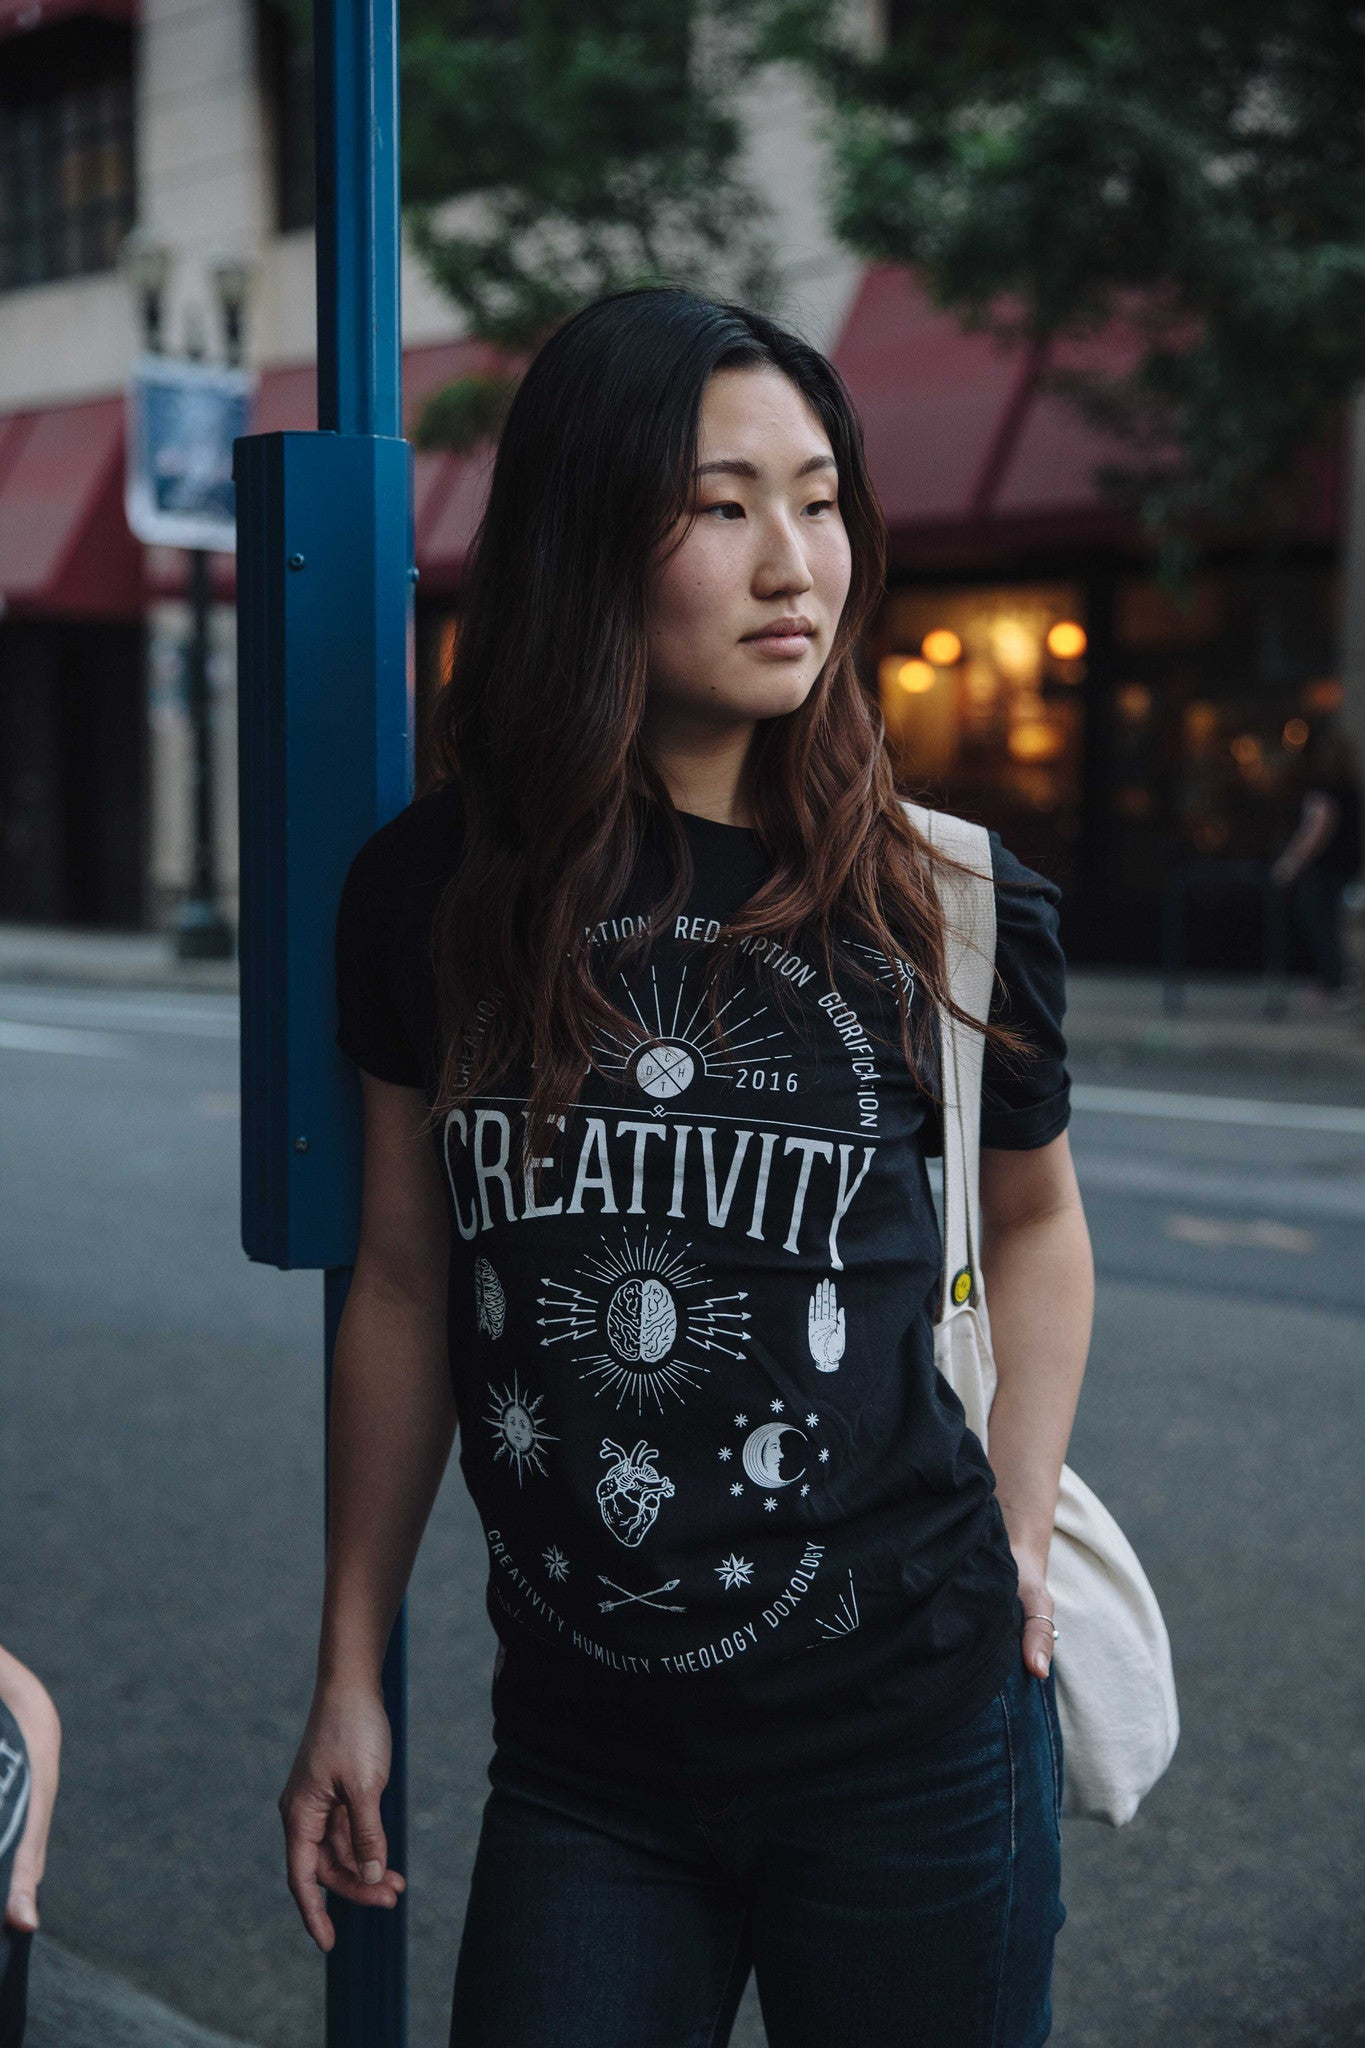 CHTD Creativity T-Shirt